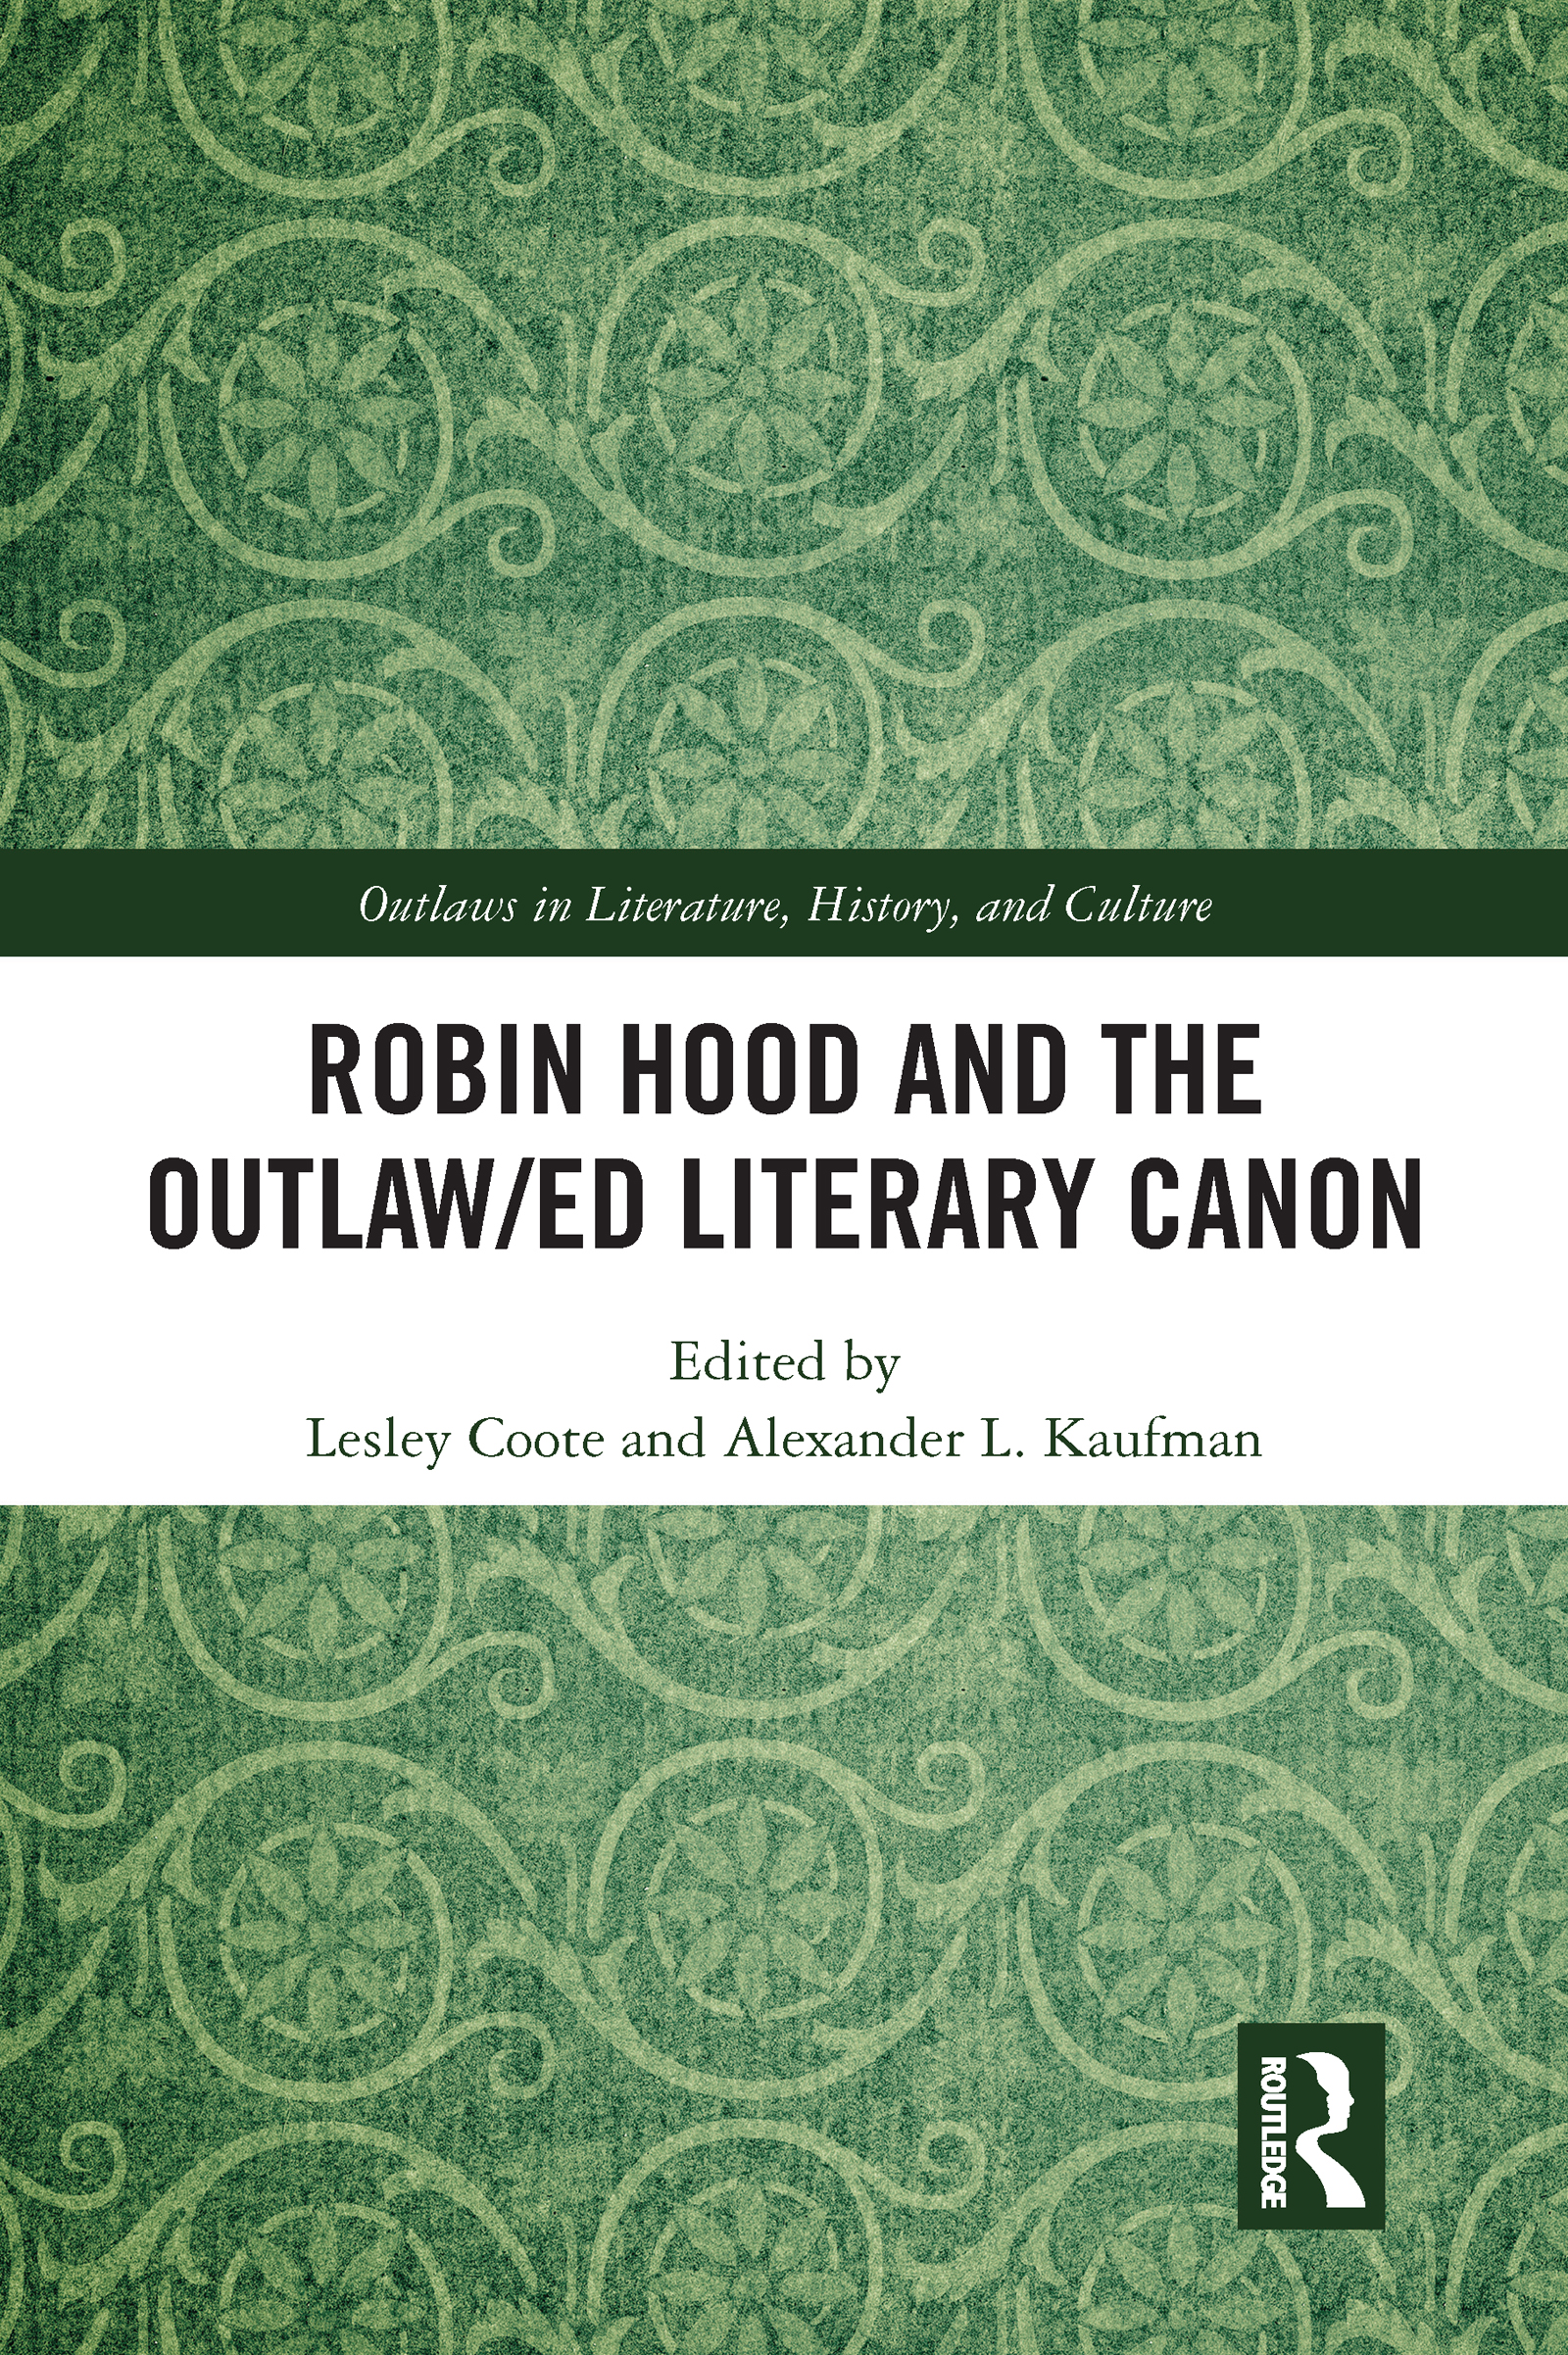 Robin Hood and the Outlaw/ed Literary Canon